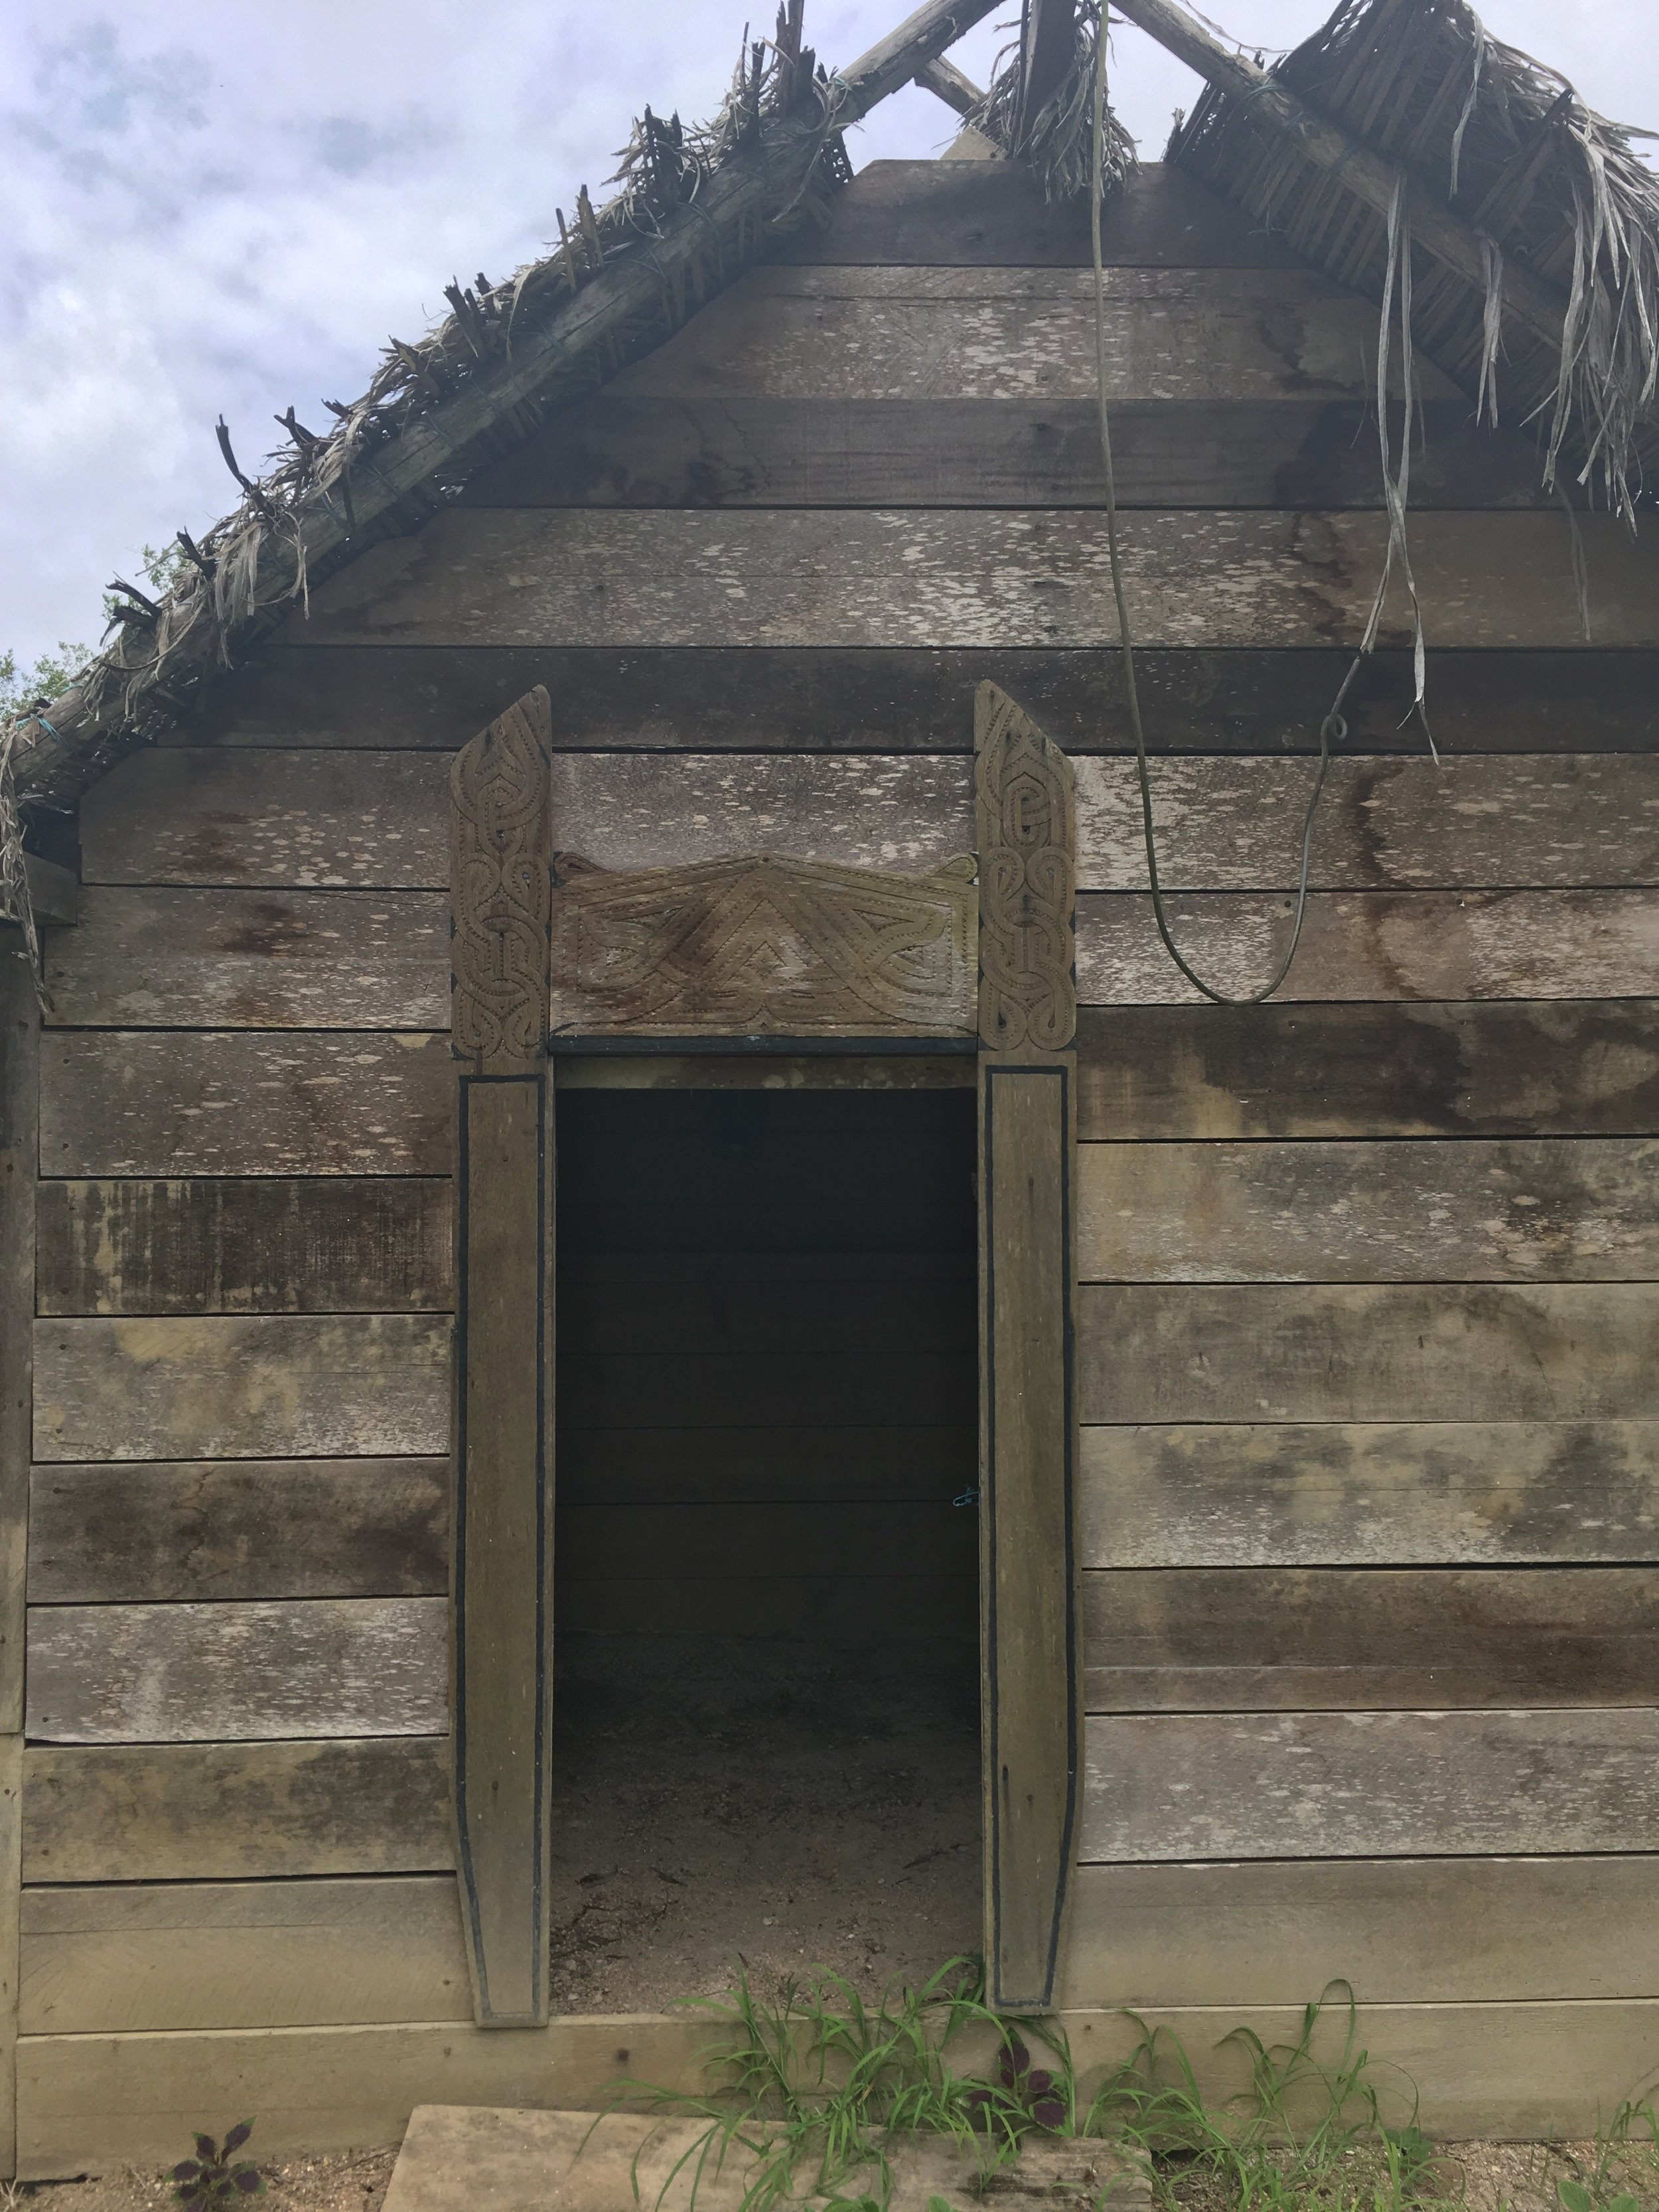 A traditional Saamaka (also known as Saramaka or Saramakaner) Maroon house at the New Amsterdam Open Air Museum.